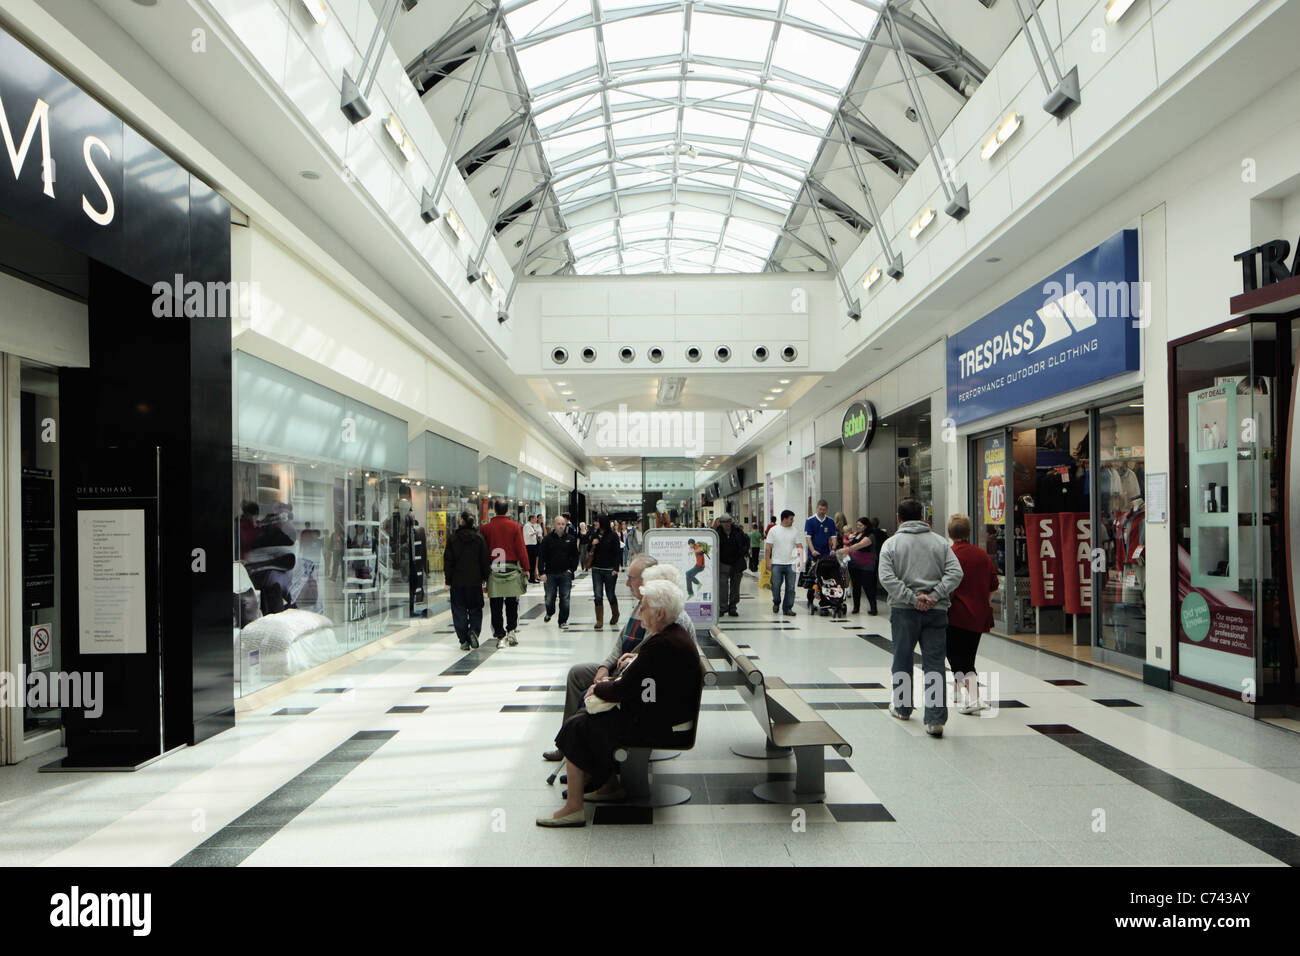 The Thistles shopping centre Stirling Scotland - Stock Image